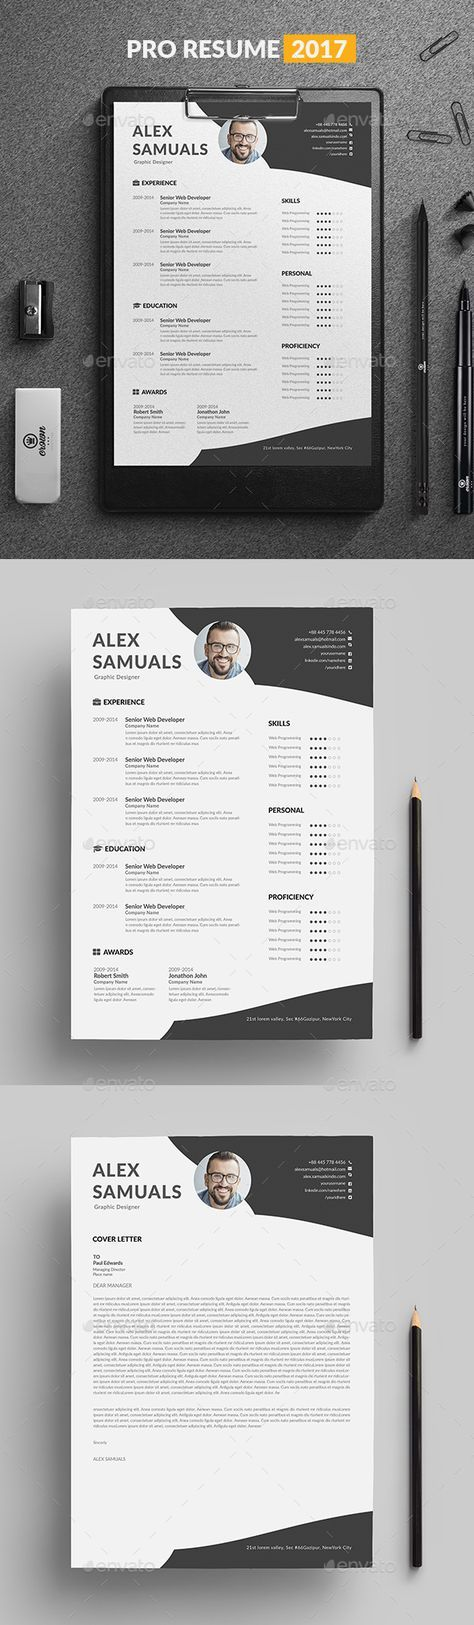 Best 25 Cool resumes ideas on Pinterest  Curriculum vitae examples Layout cv and Cv infographic